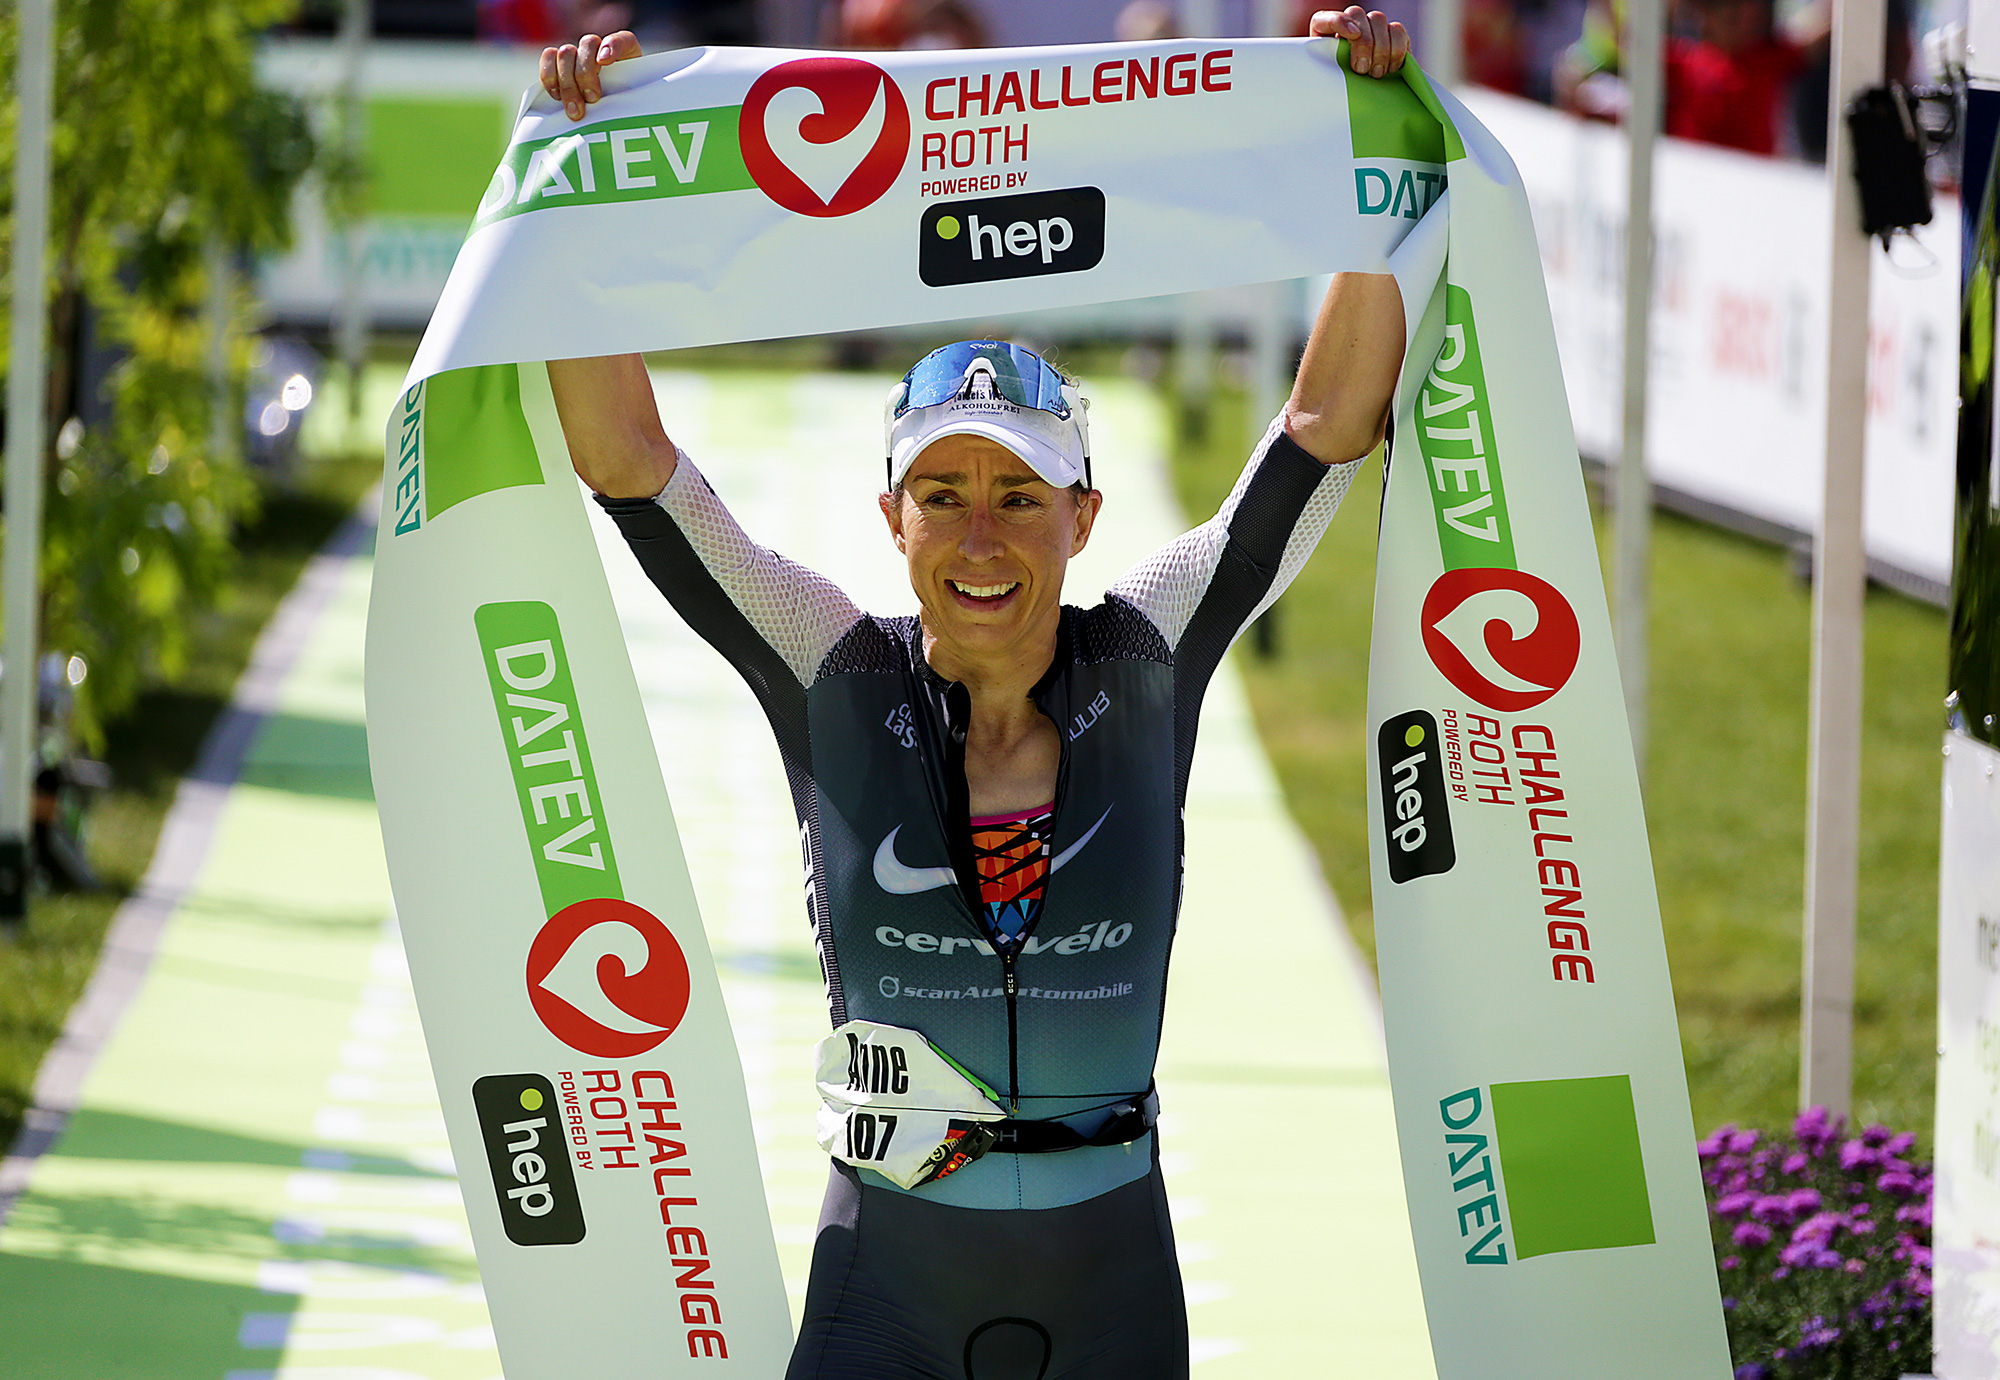 2nd title of Europe champion on the Challenge de Roth